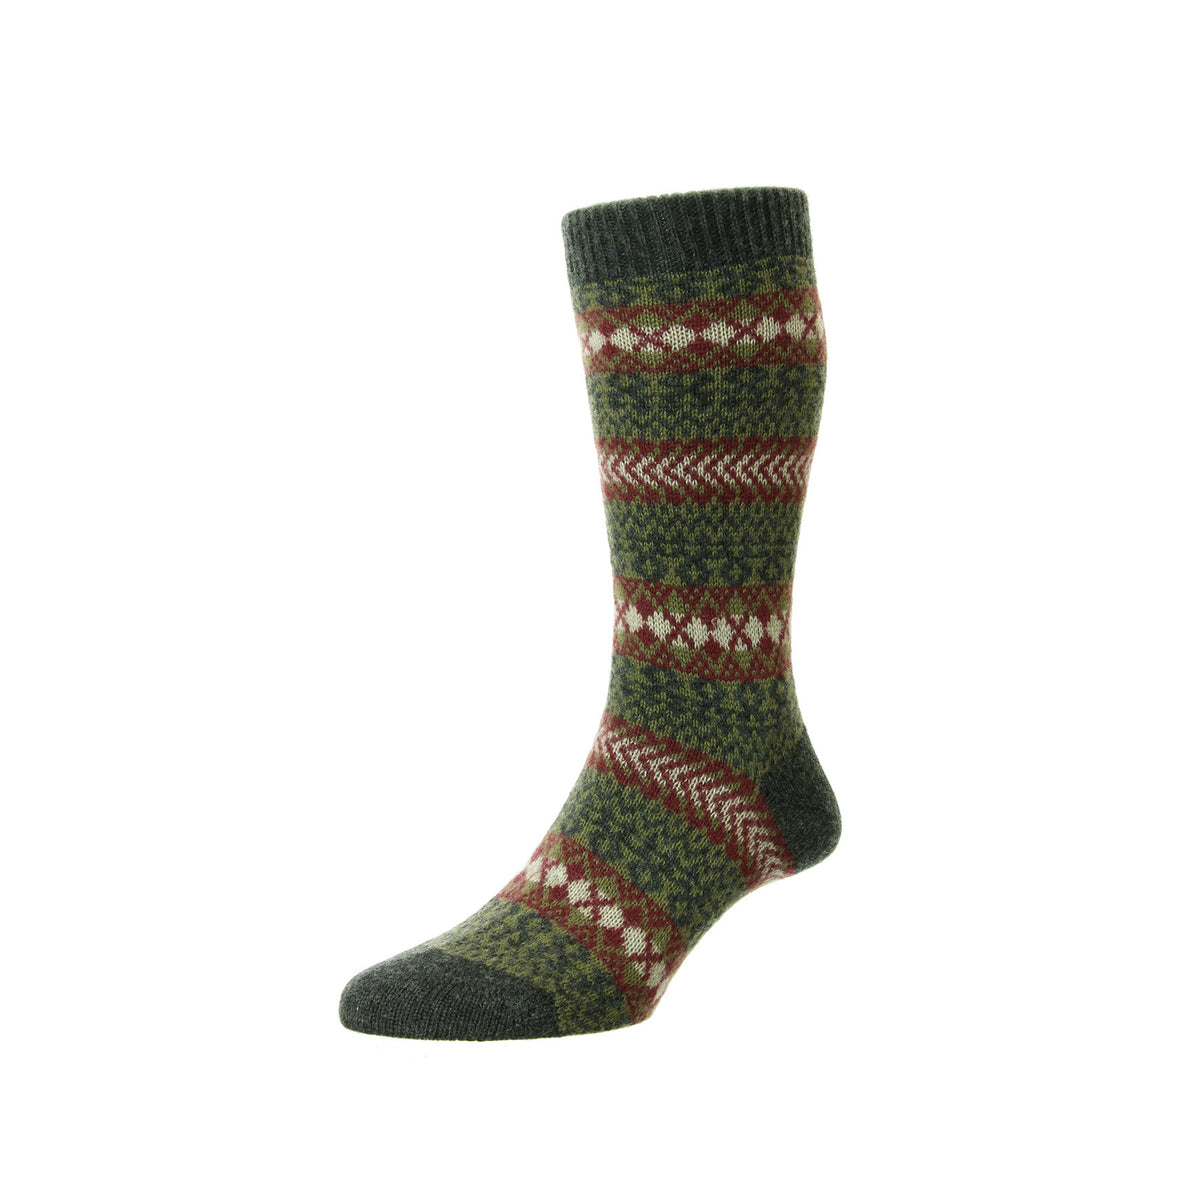 Fairisle Cashmere Socks | Calf Length Sock | buy now at The Cashmere Choice London